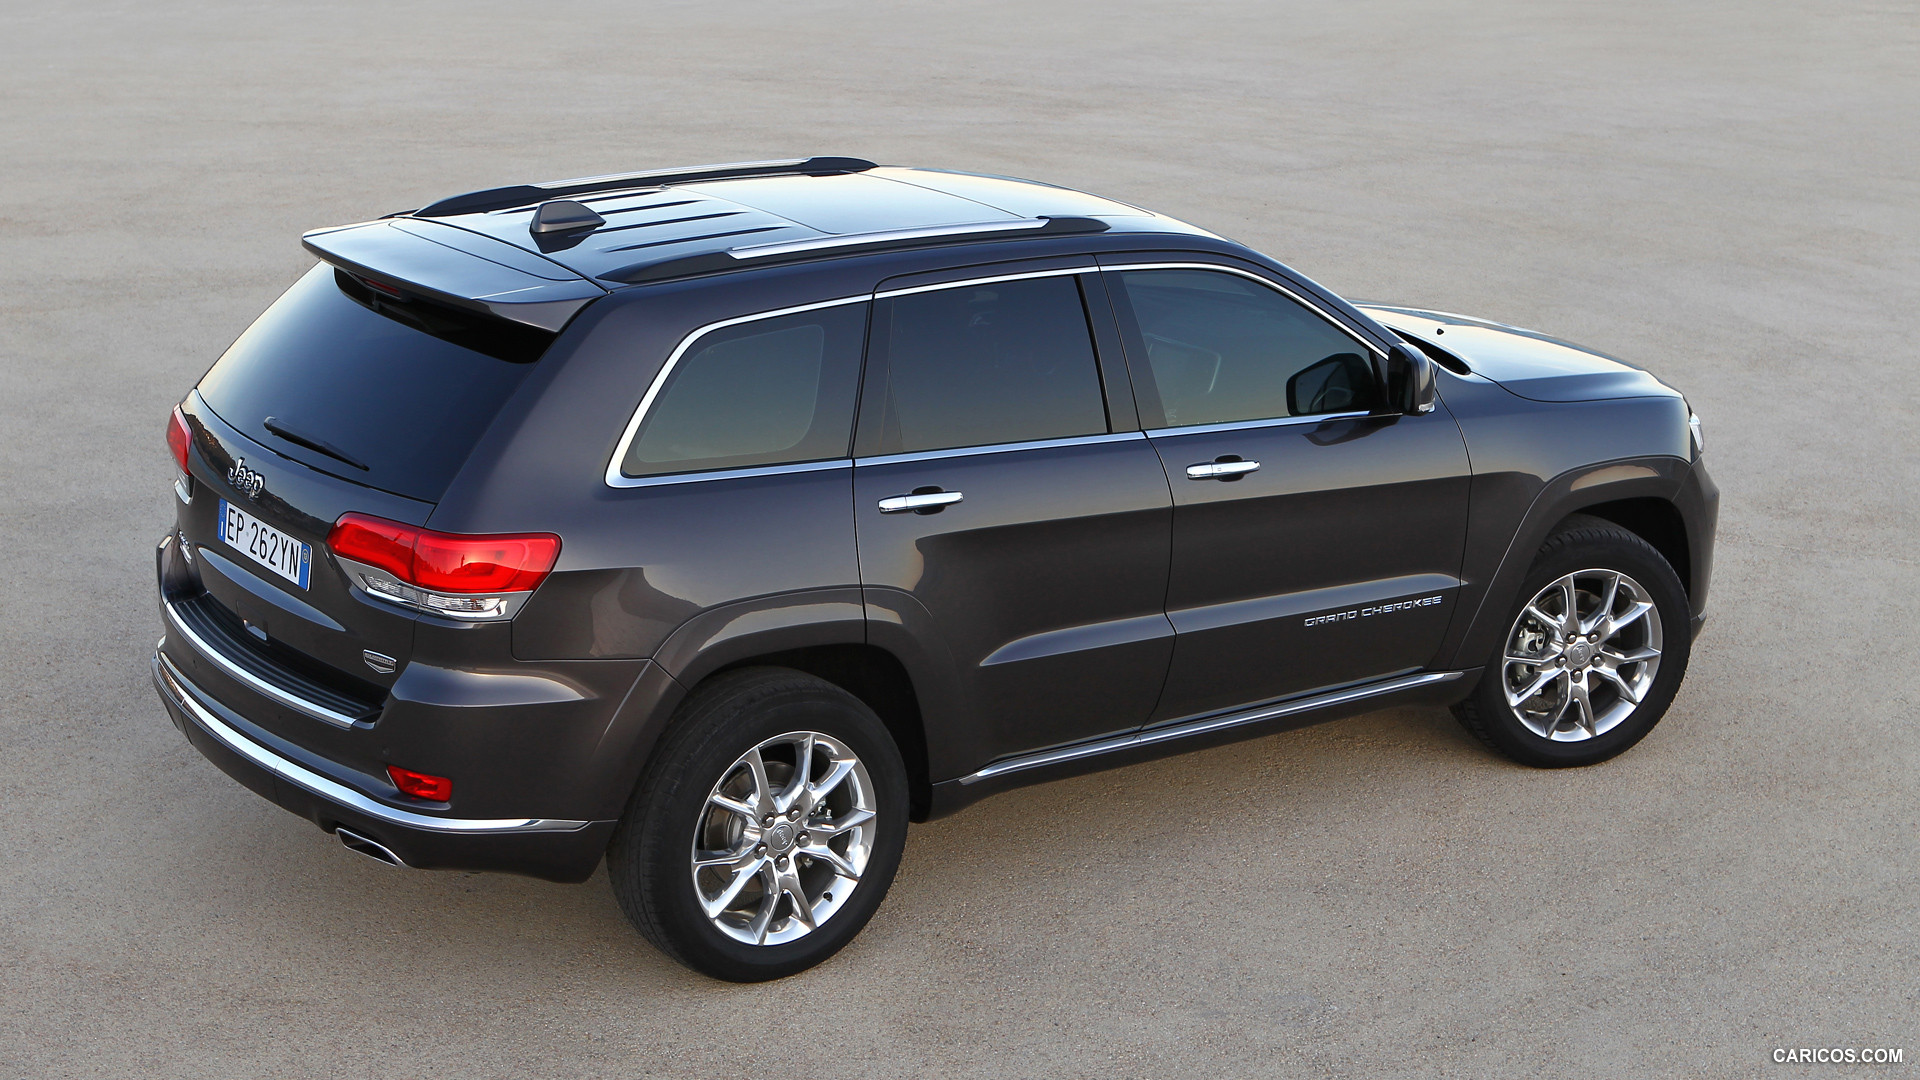 Jeep Grand Cherokee EU-Version photo 108631